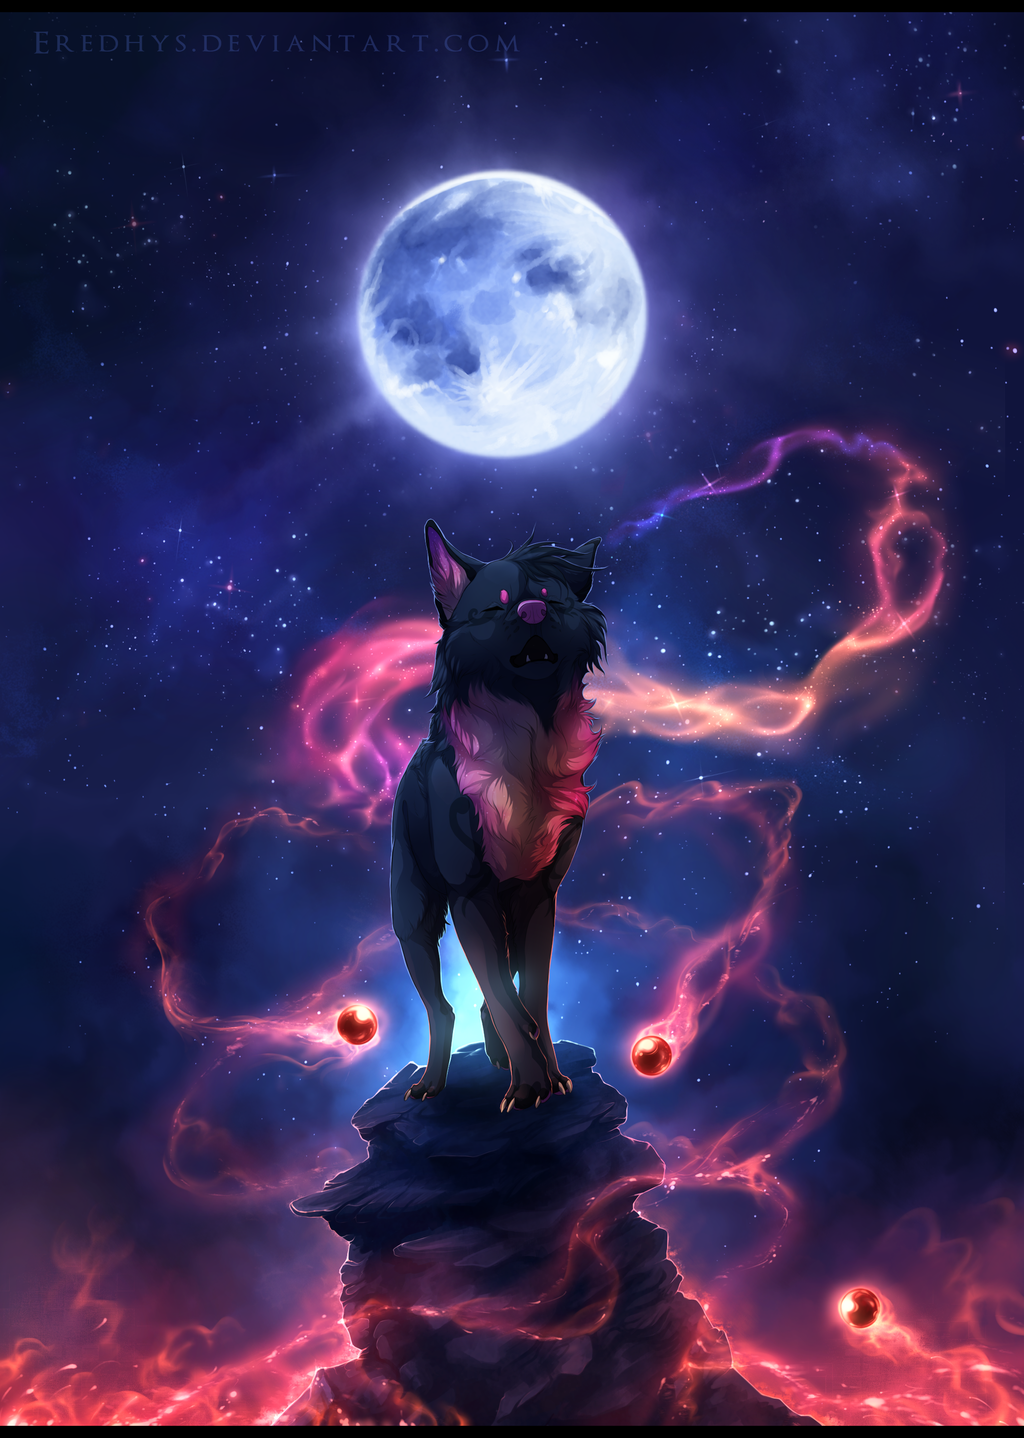 Song of the Blue Moon Commission. by Eredhys.deviantart